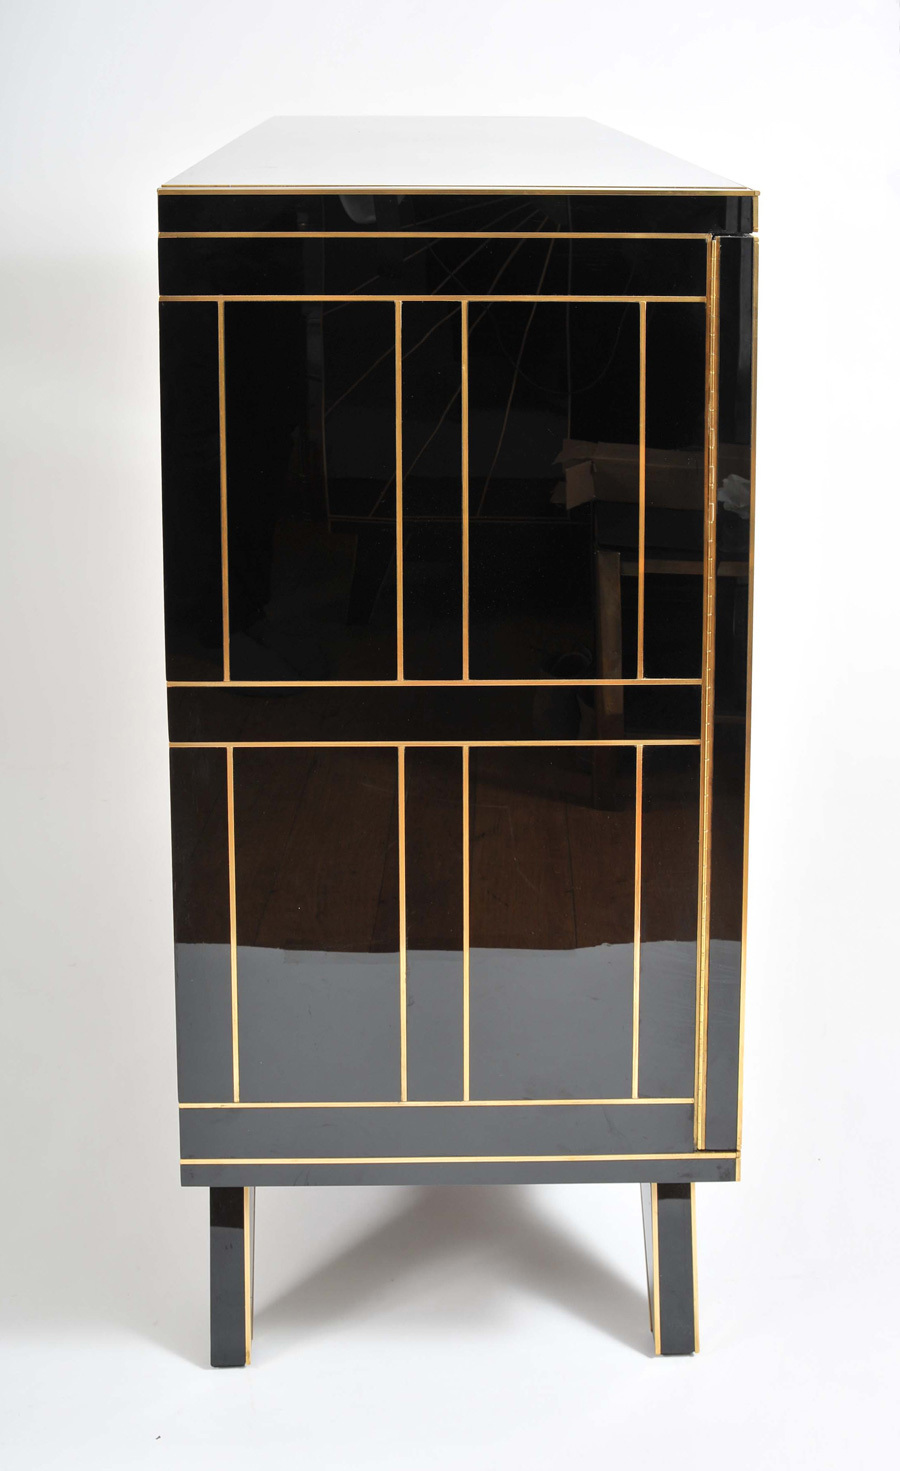 The image for Valerie Wade 0621 Pair 1970S Italian Black Glass Cabinets 03